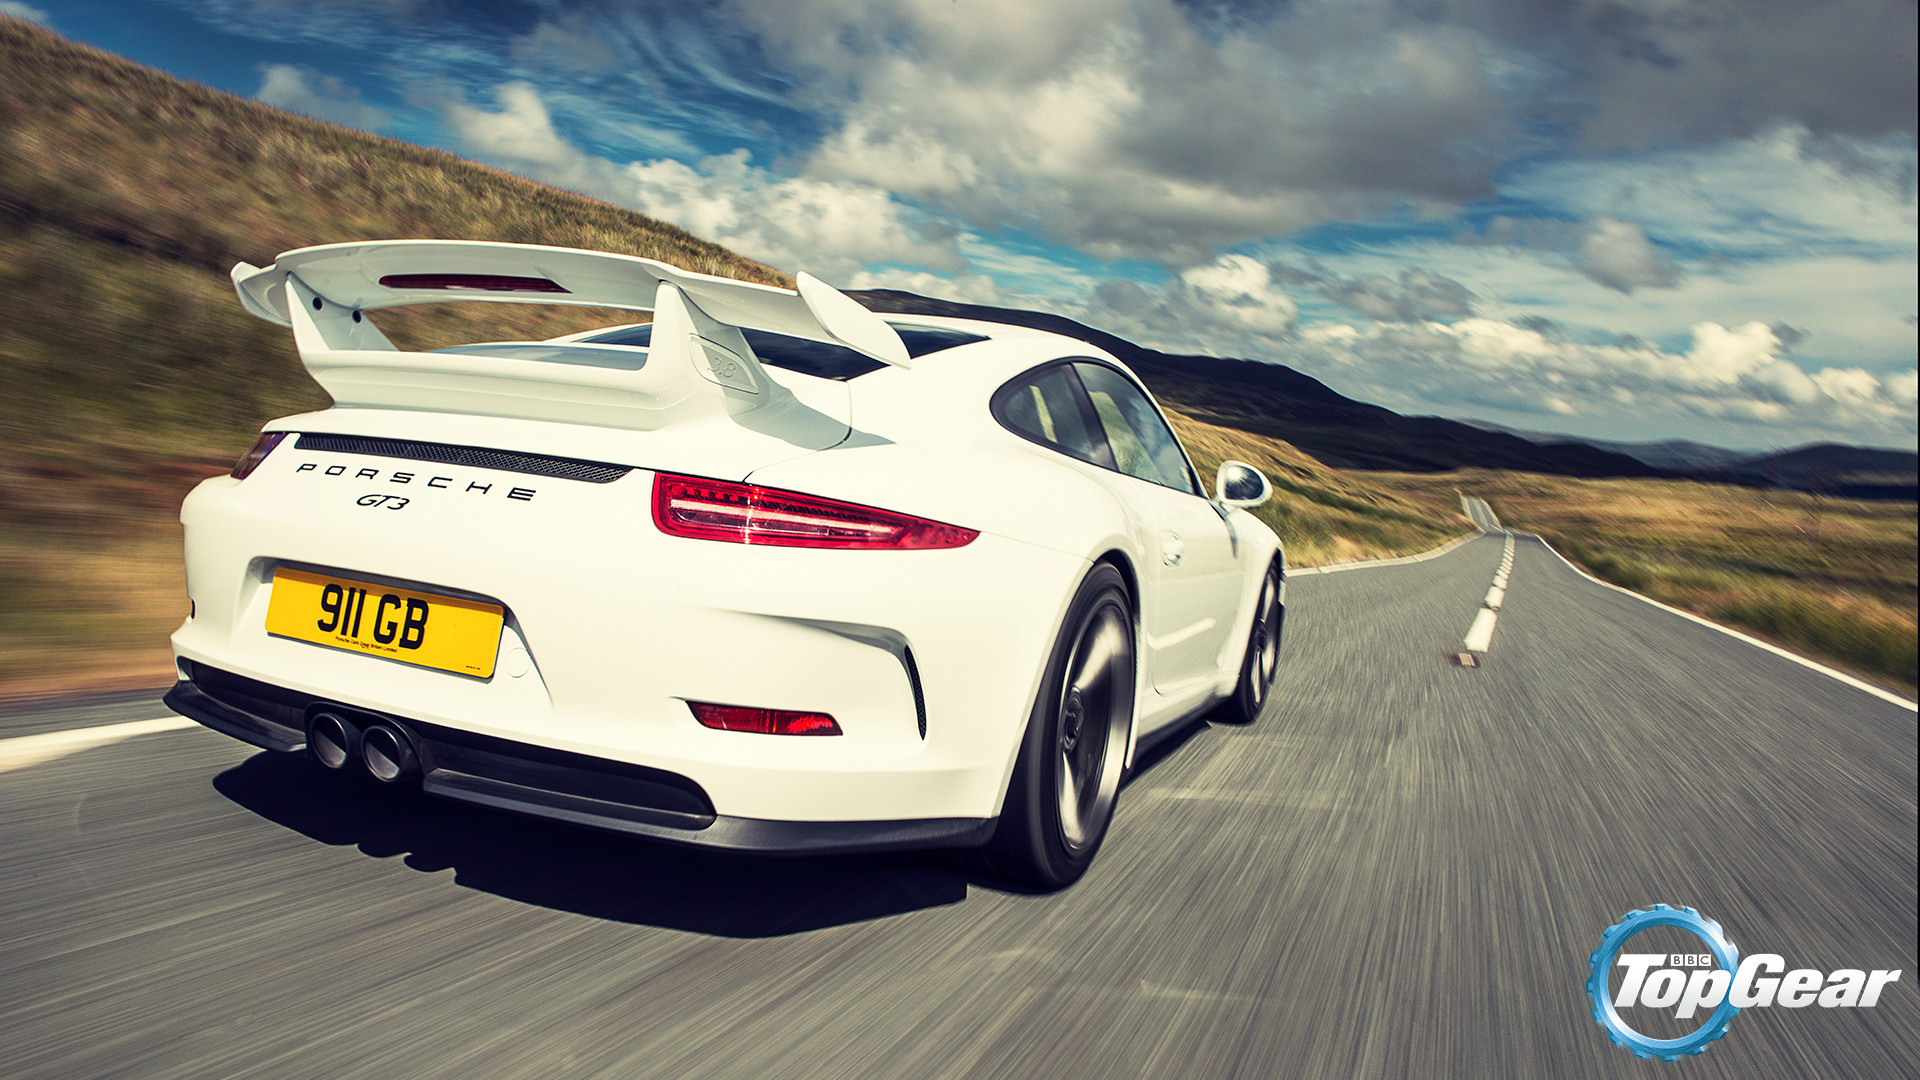 1920x1080 Wallpapers: Porsche GT3 - BBC Top Gear